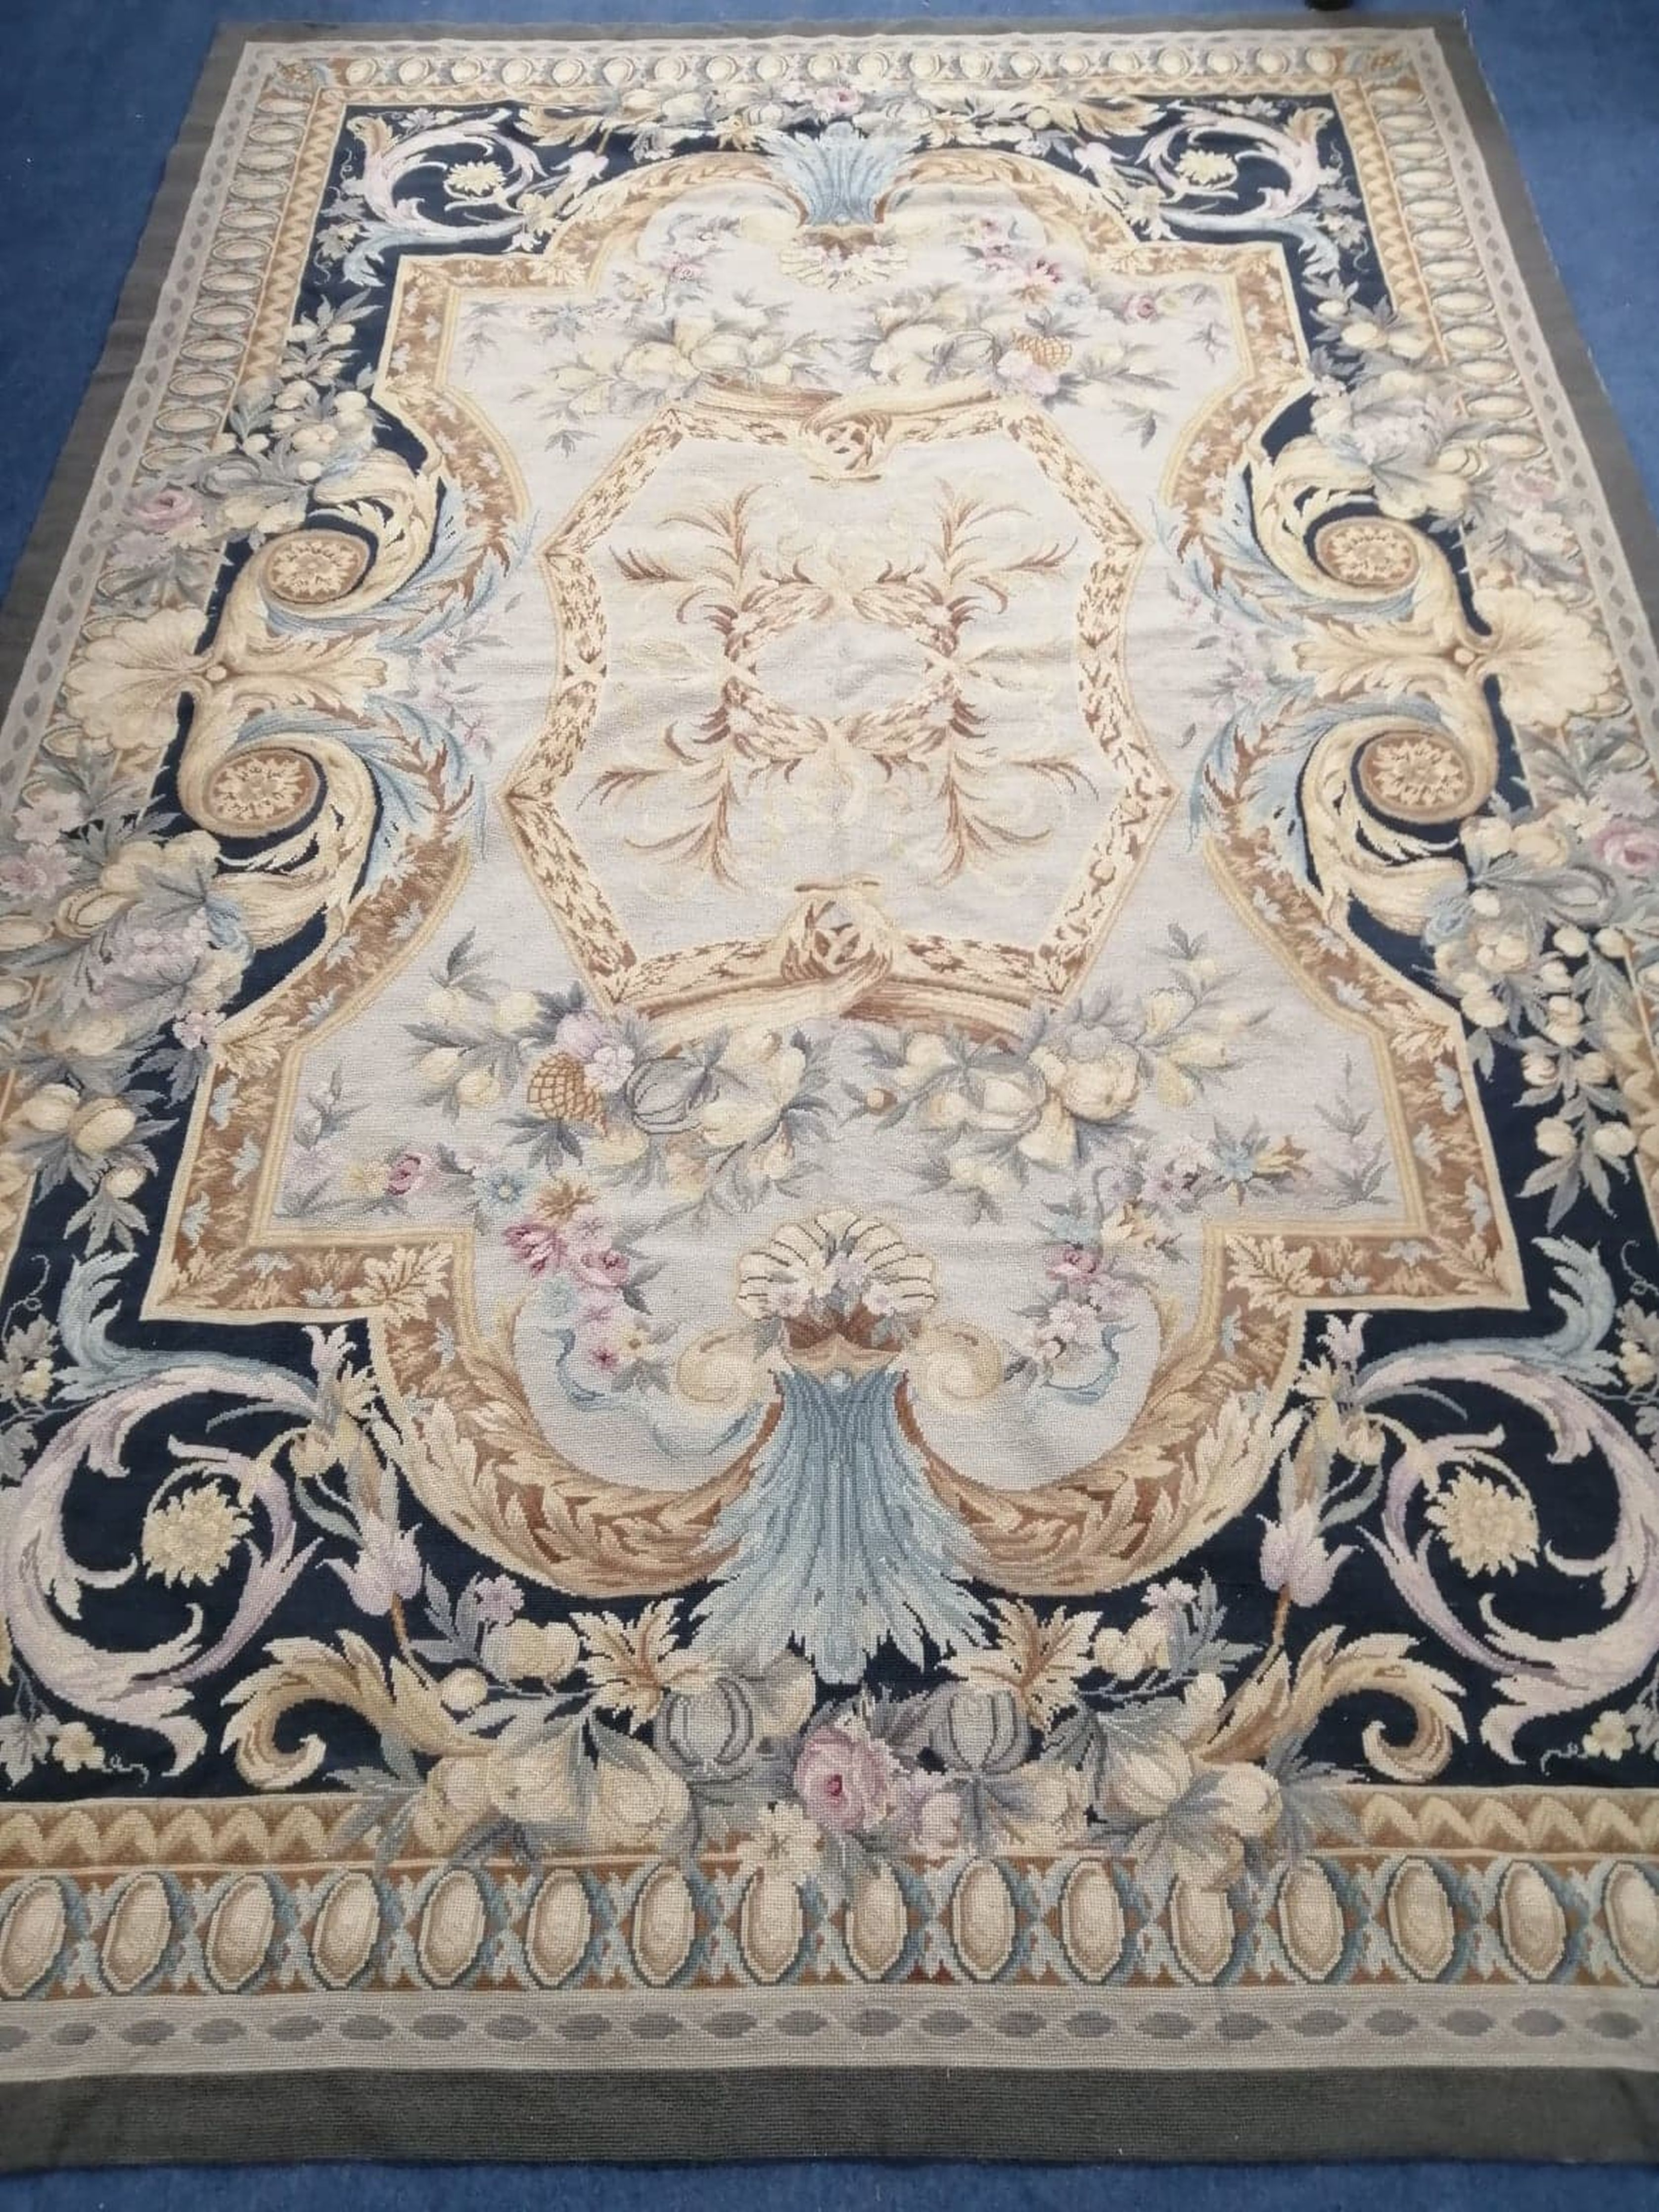 Lot 922 - An Aubusson style tapestry hanging 266 x 180cm